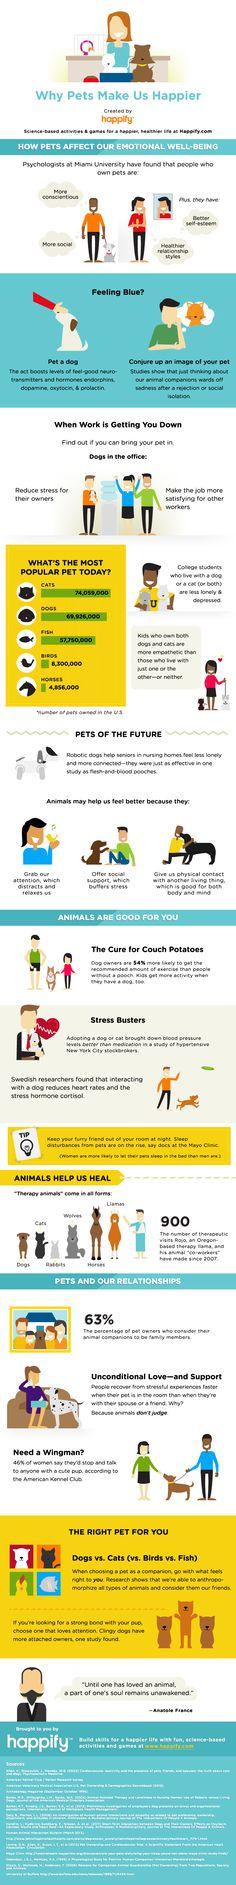 160 best The Science of Happiness images on Pinterest Being - housekeeping skills